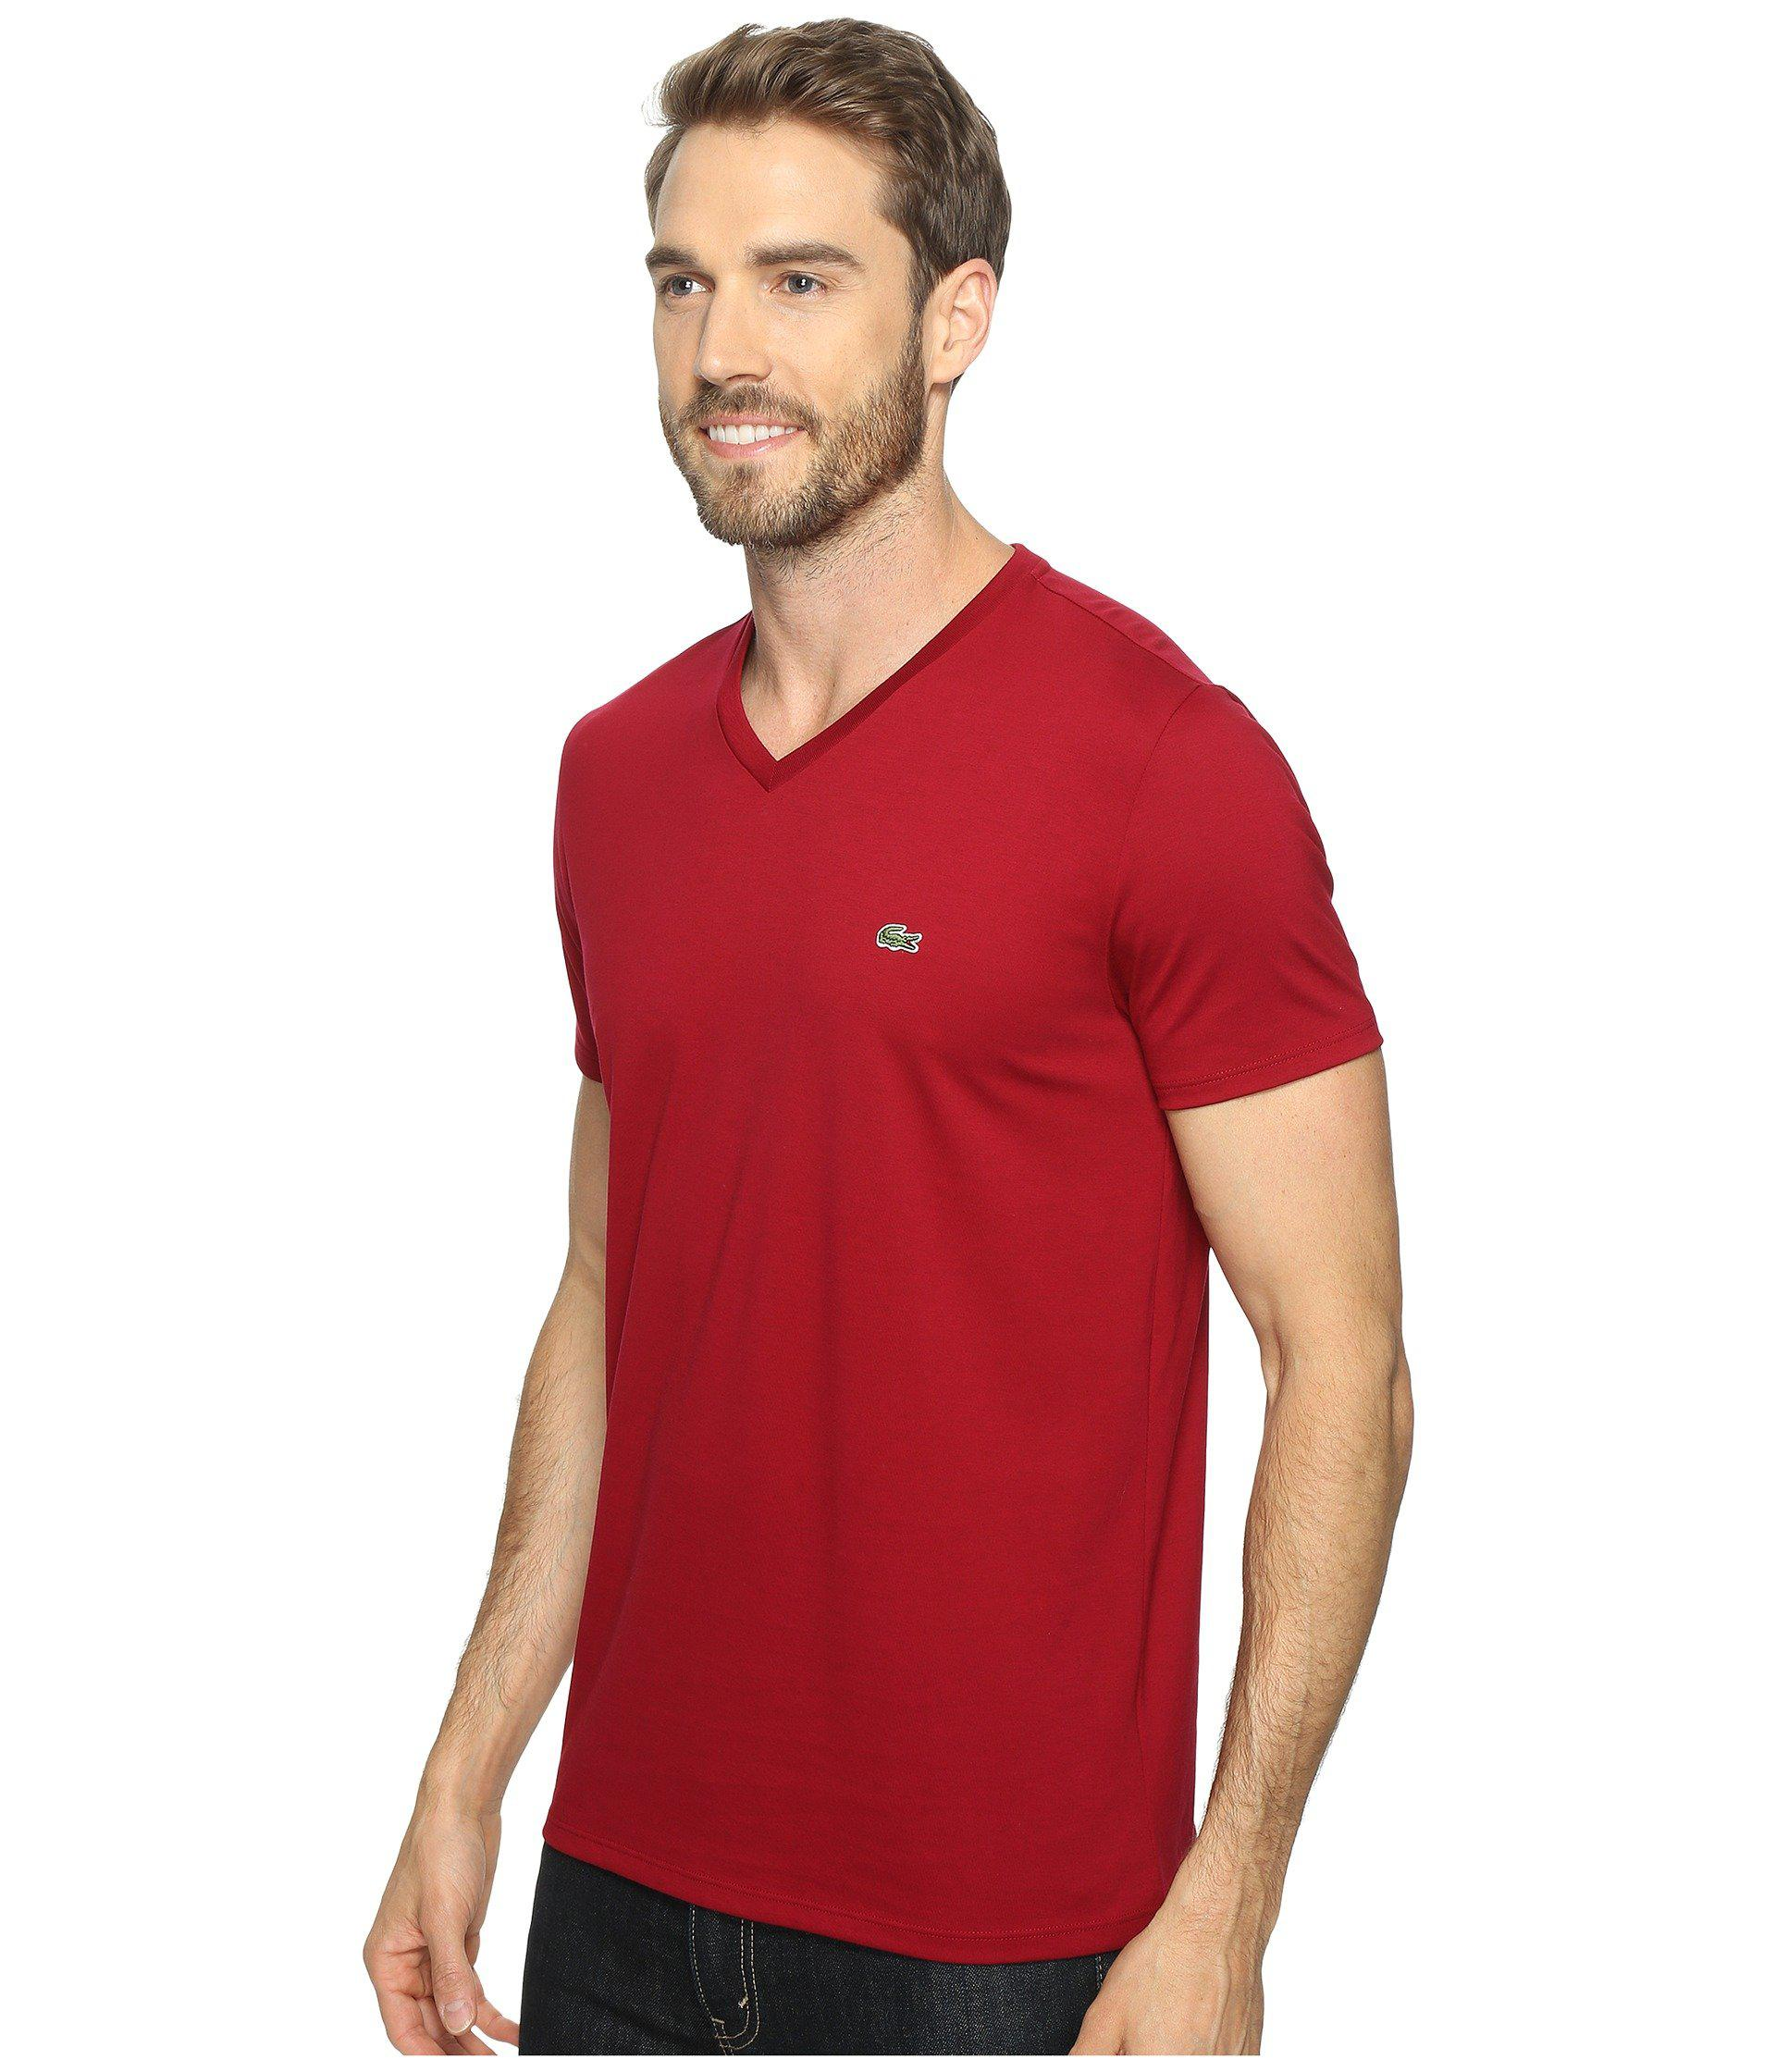 Lyst - Lacoste S s Pima Jersey V-neck T-shirt in Red for Men 2ffed72b1263